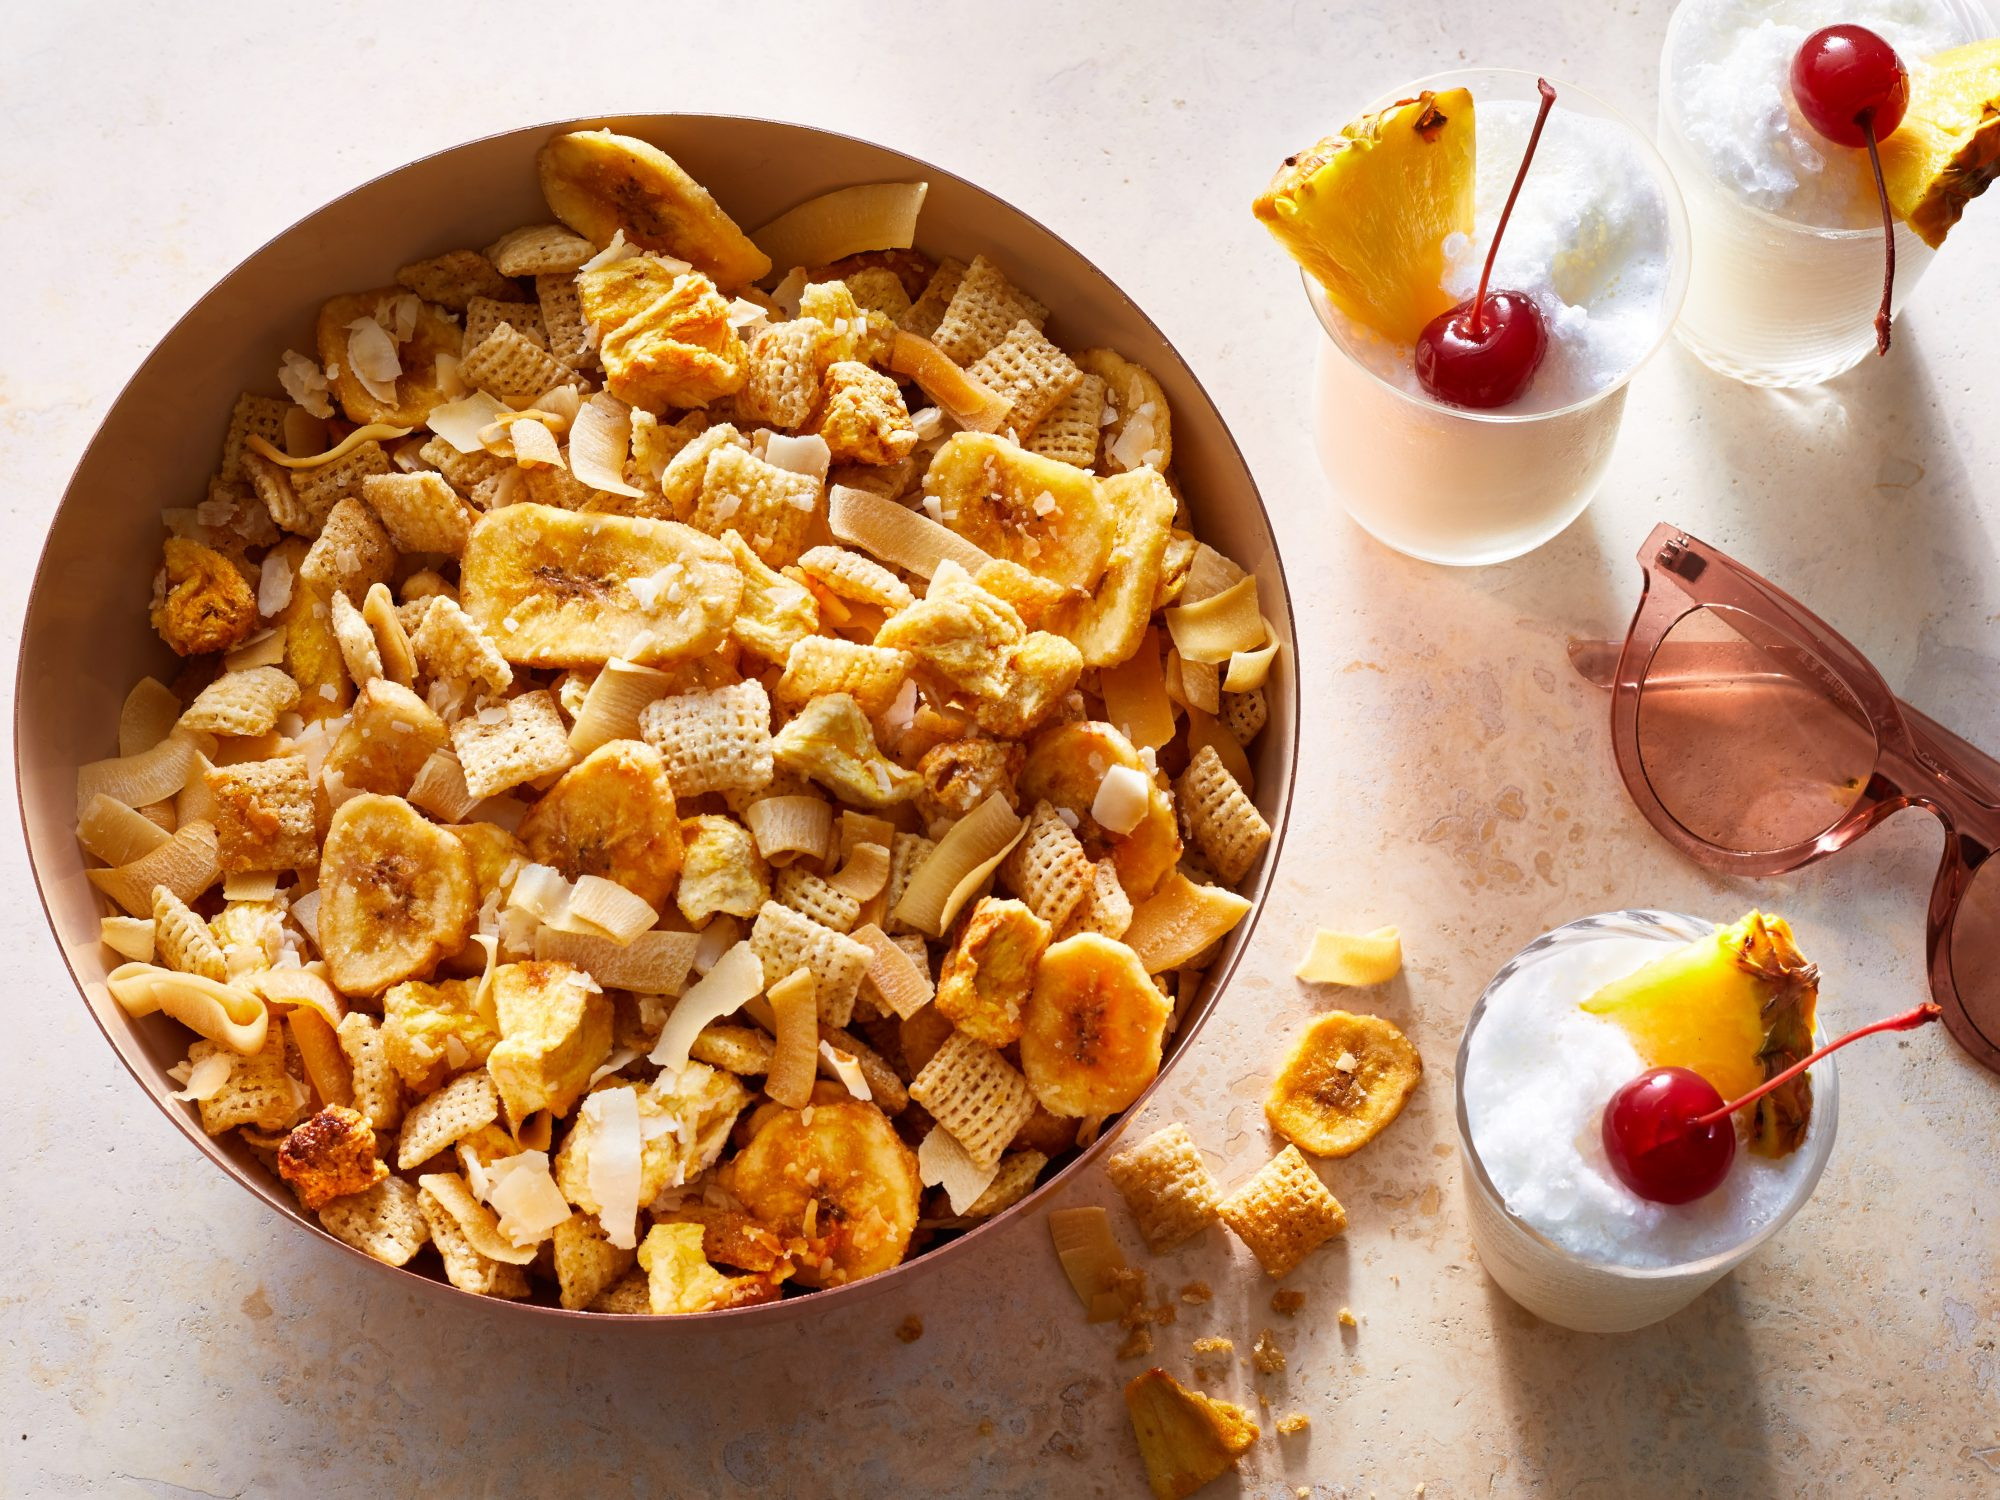 mr-pina colada snack mix image.jpg